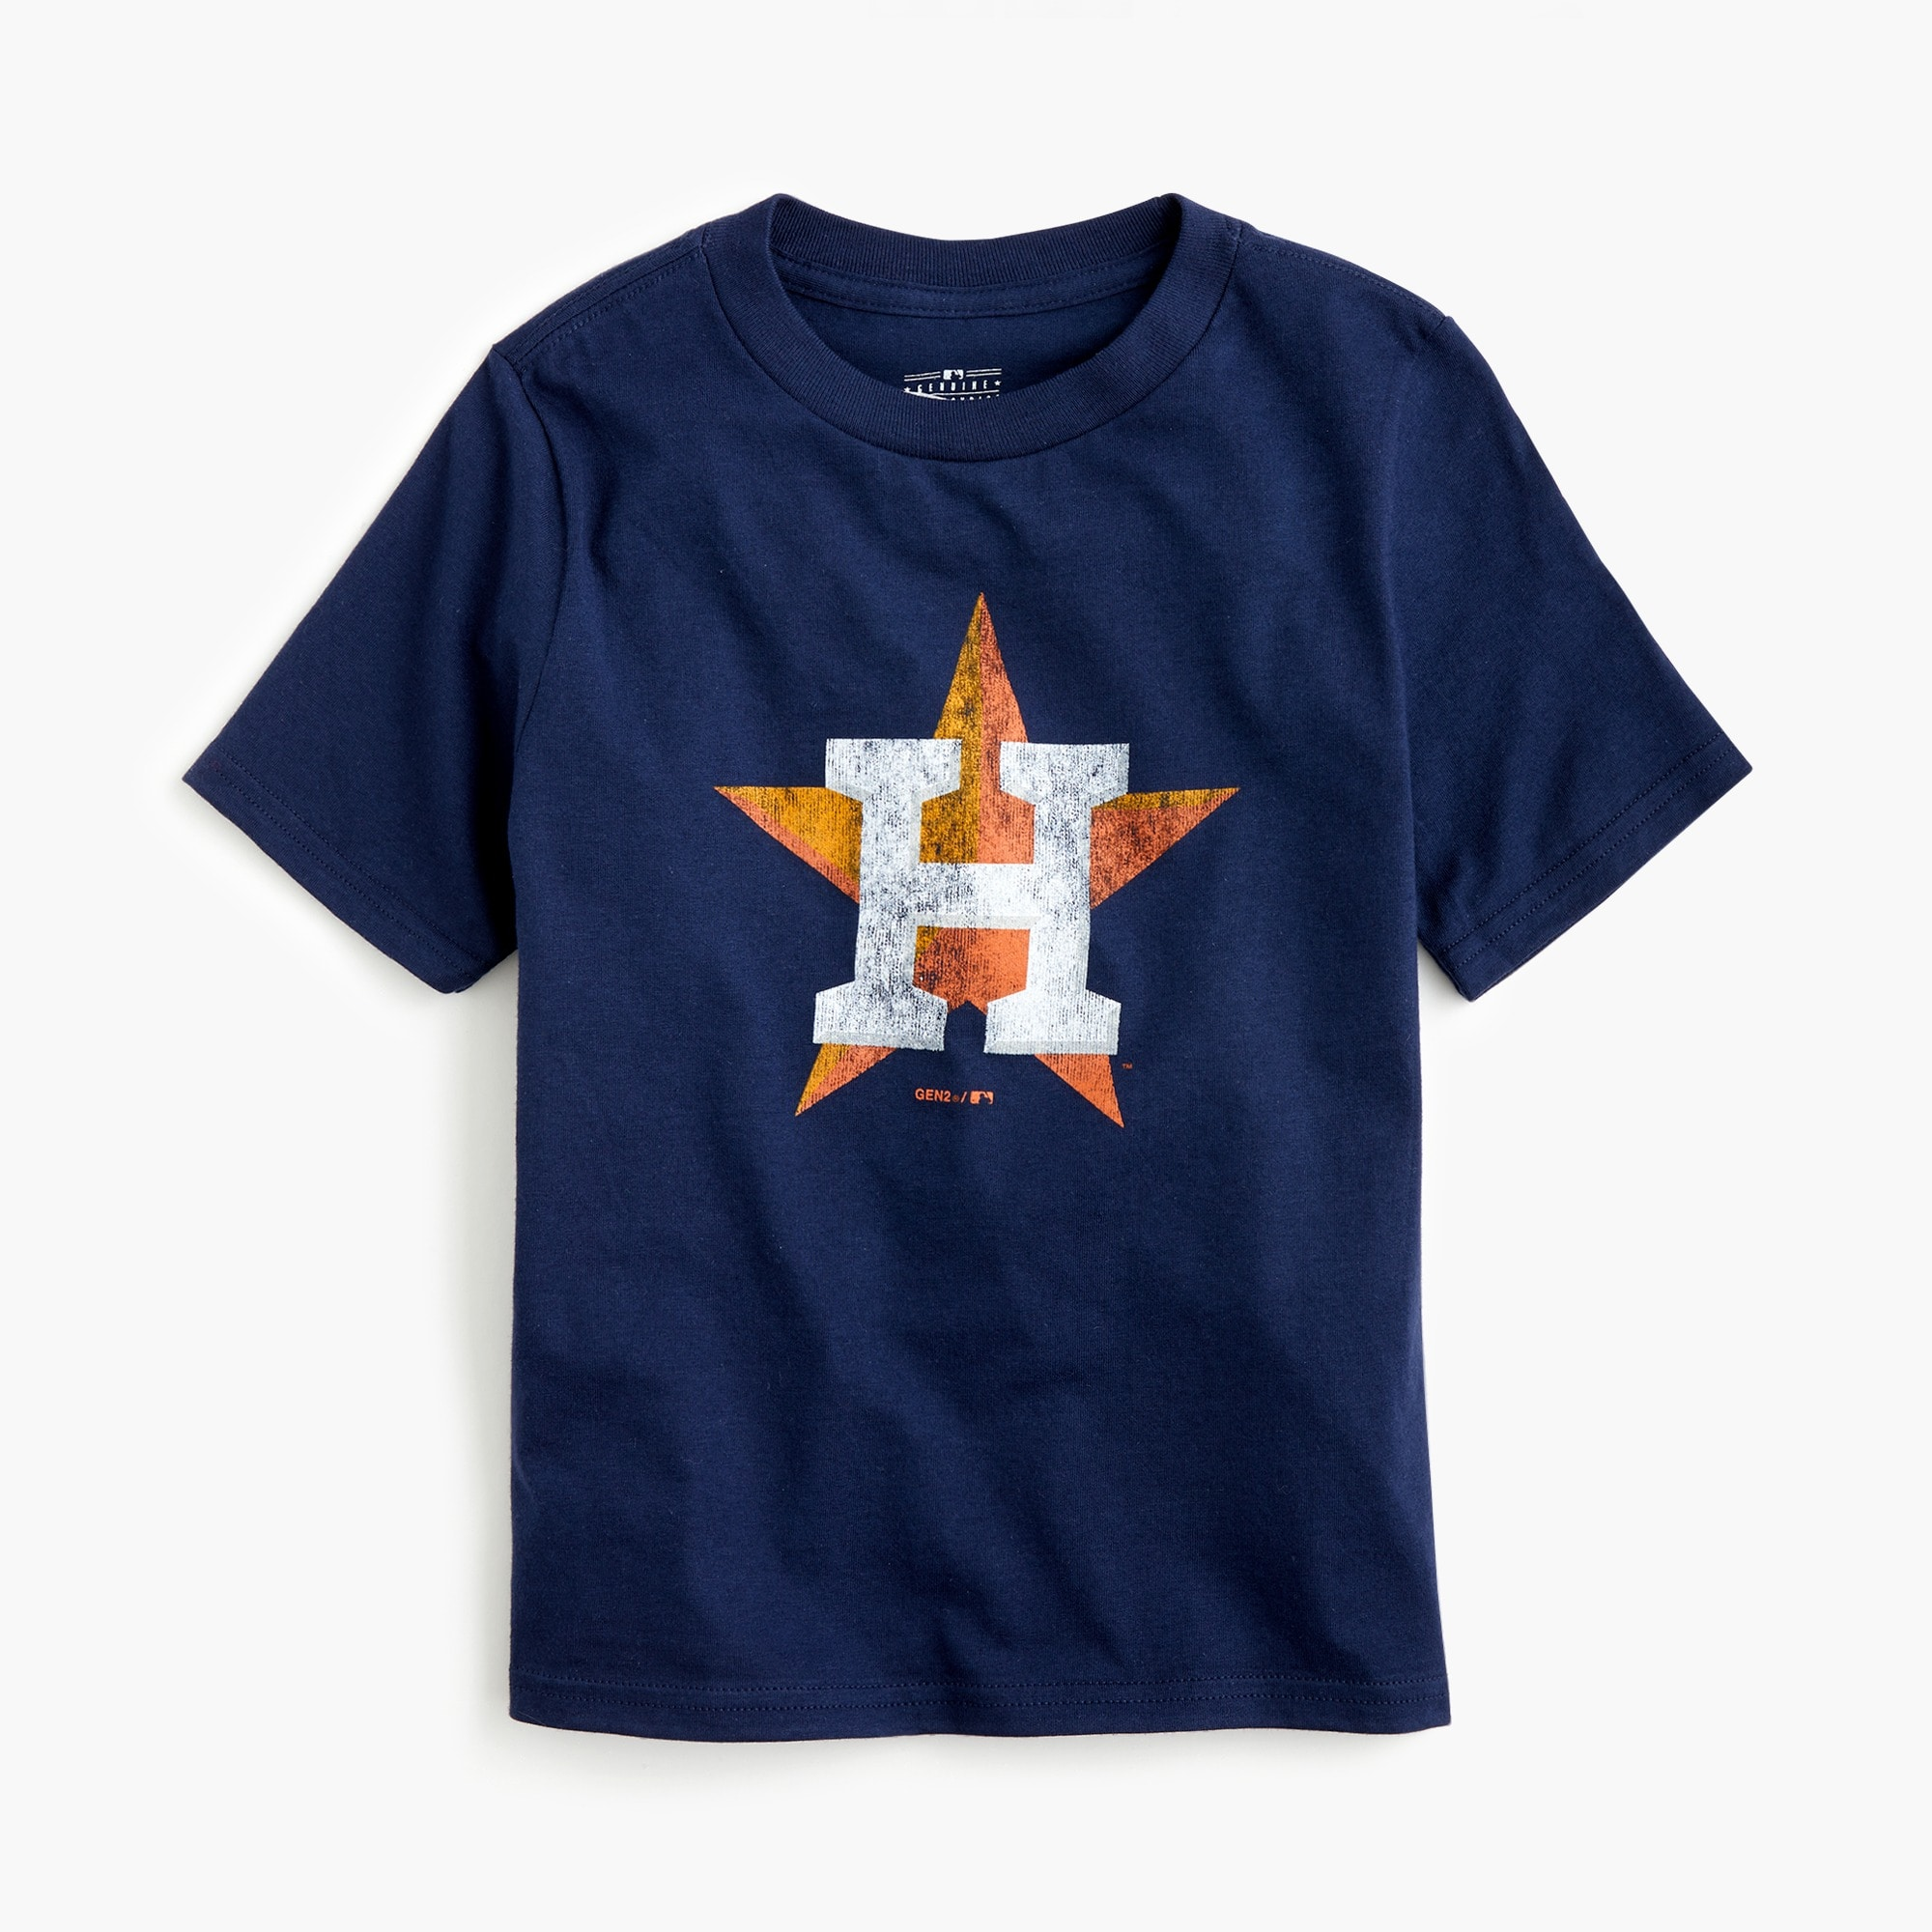 boys Kids' Houston Astros T-shirt